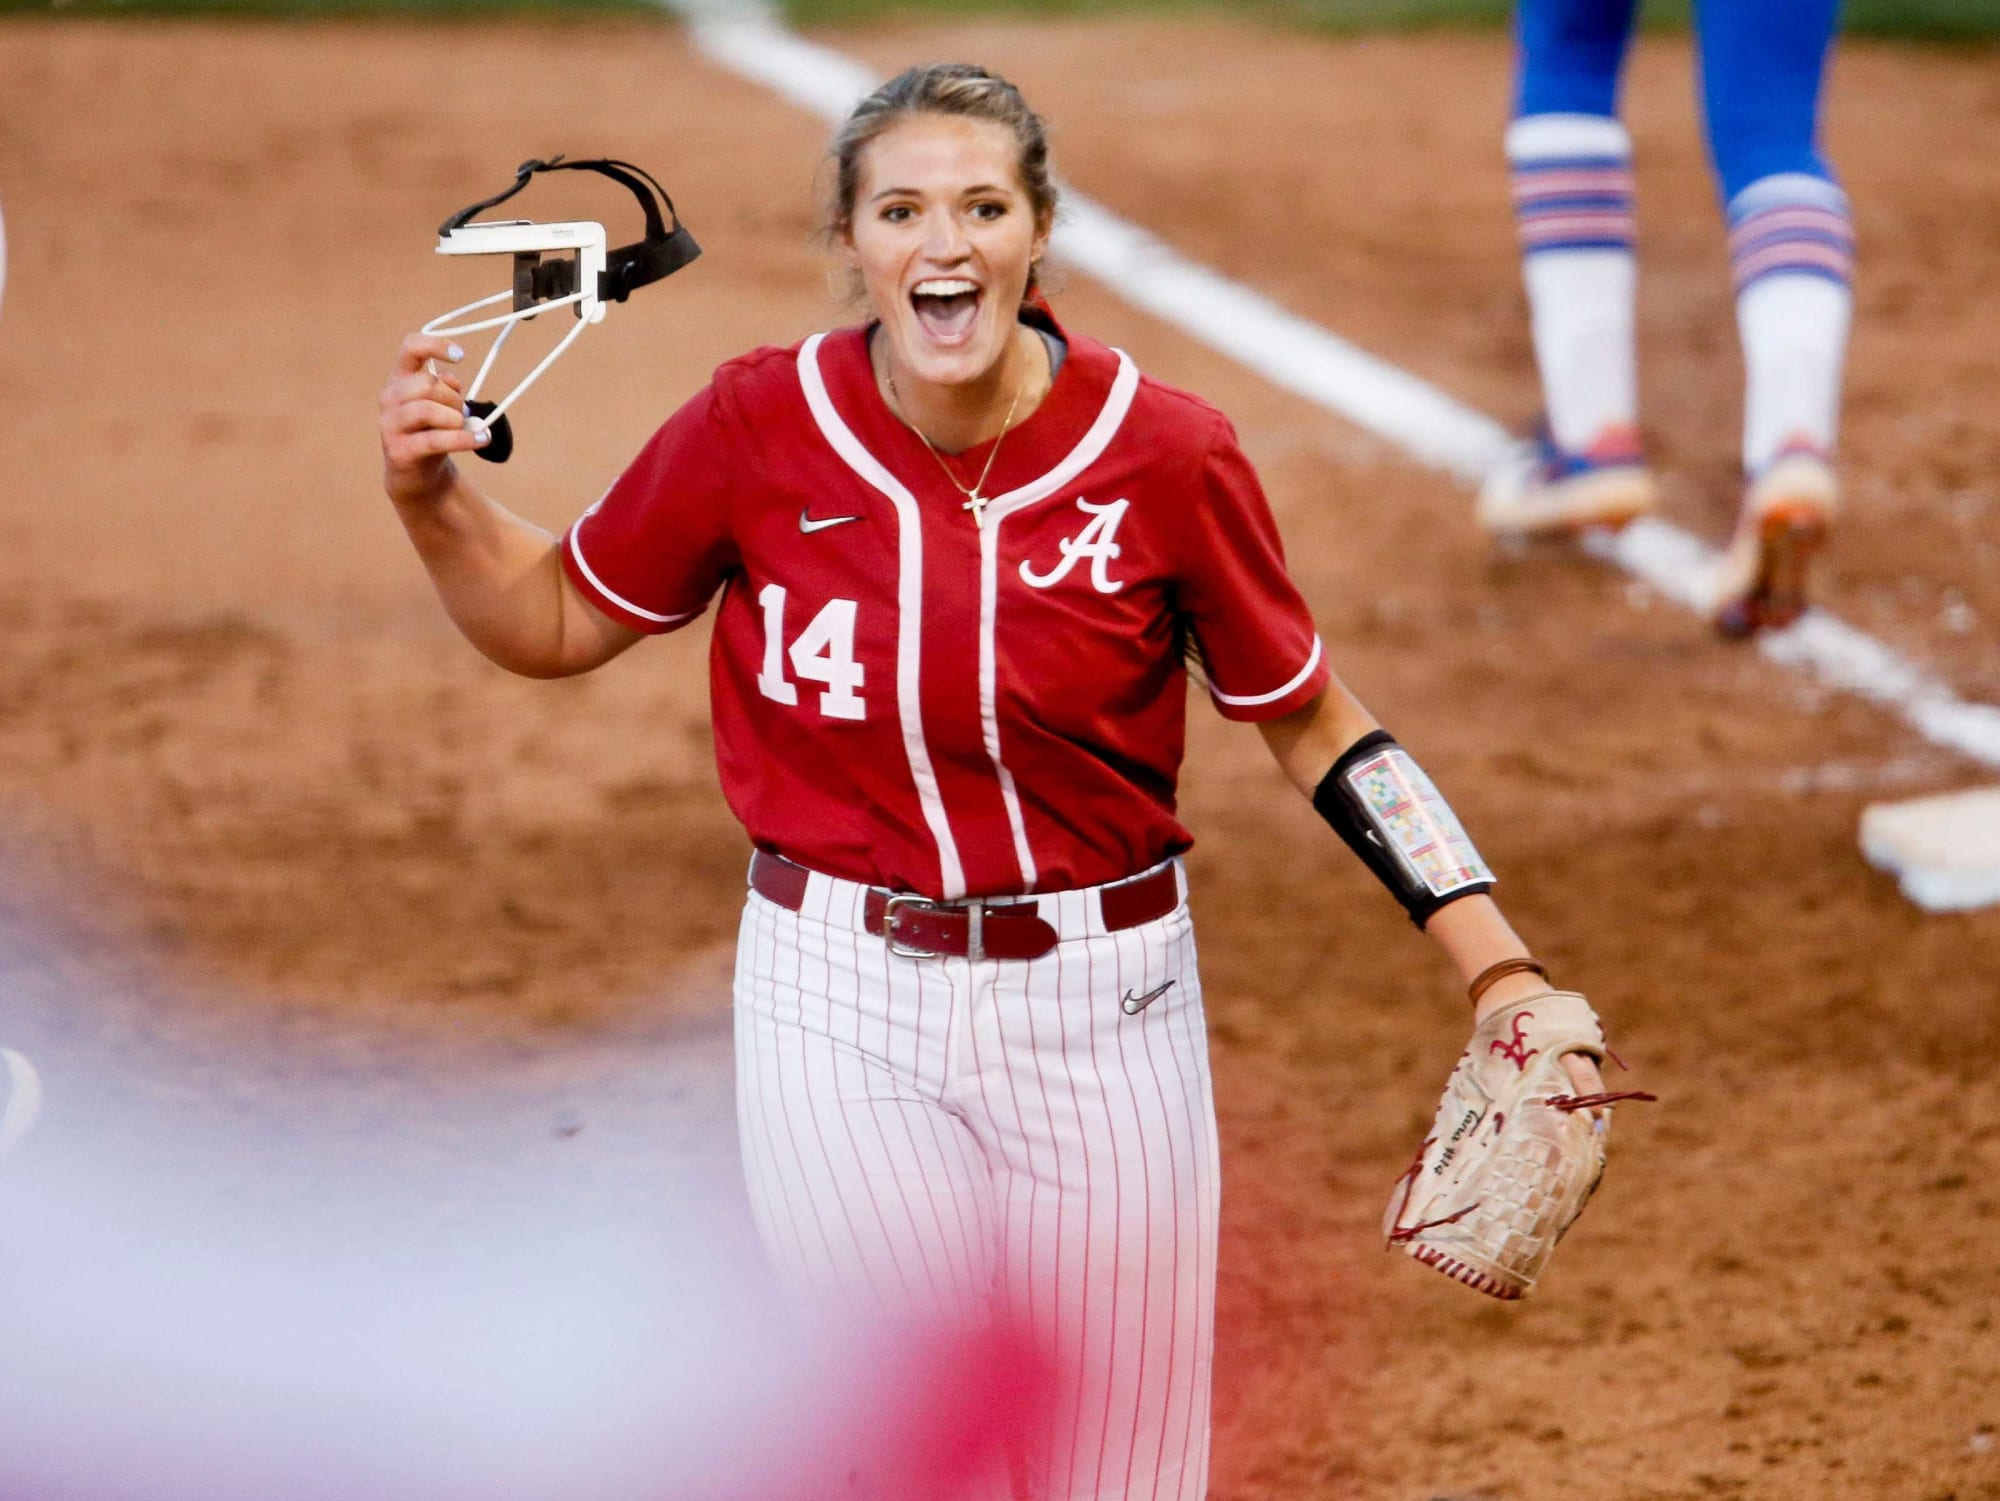 Montana Fouts might be Alabama's best in any sport